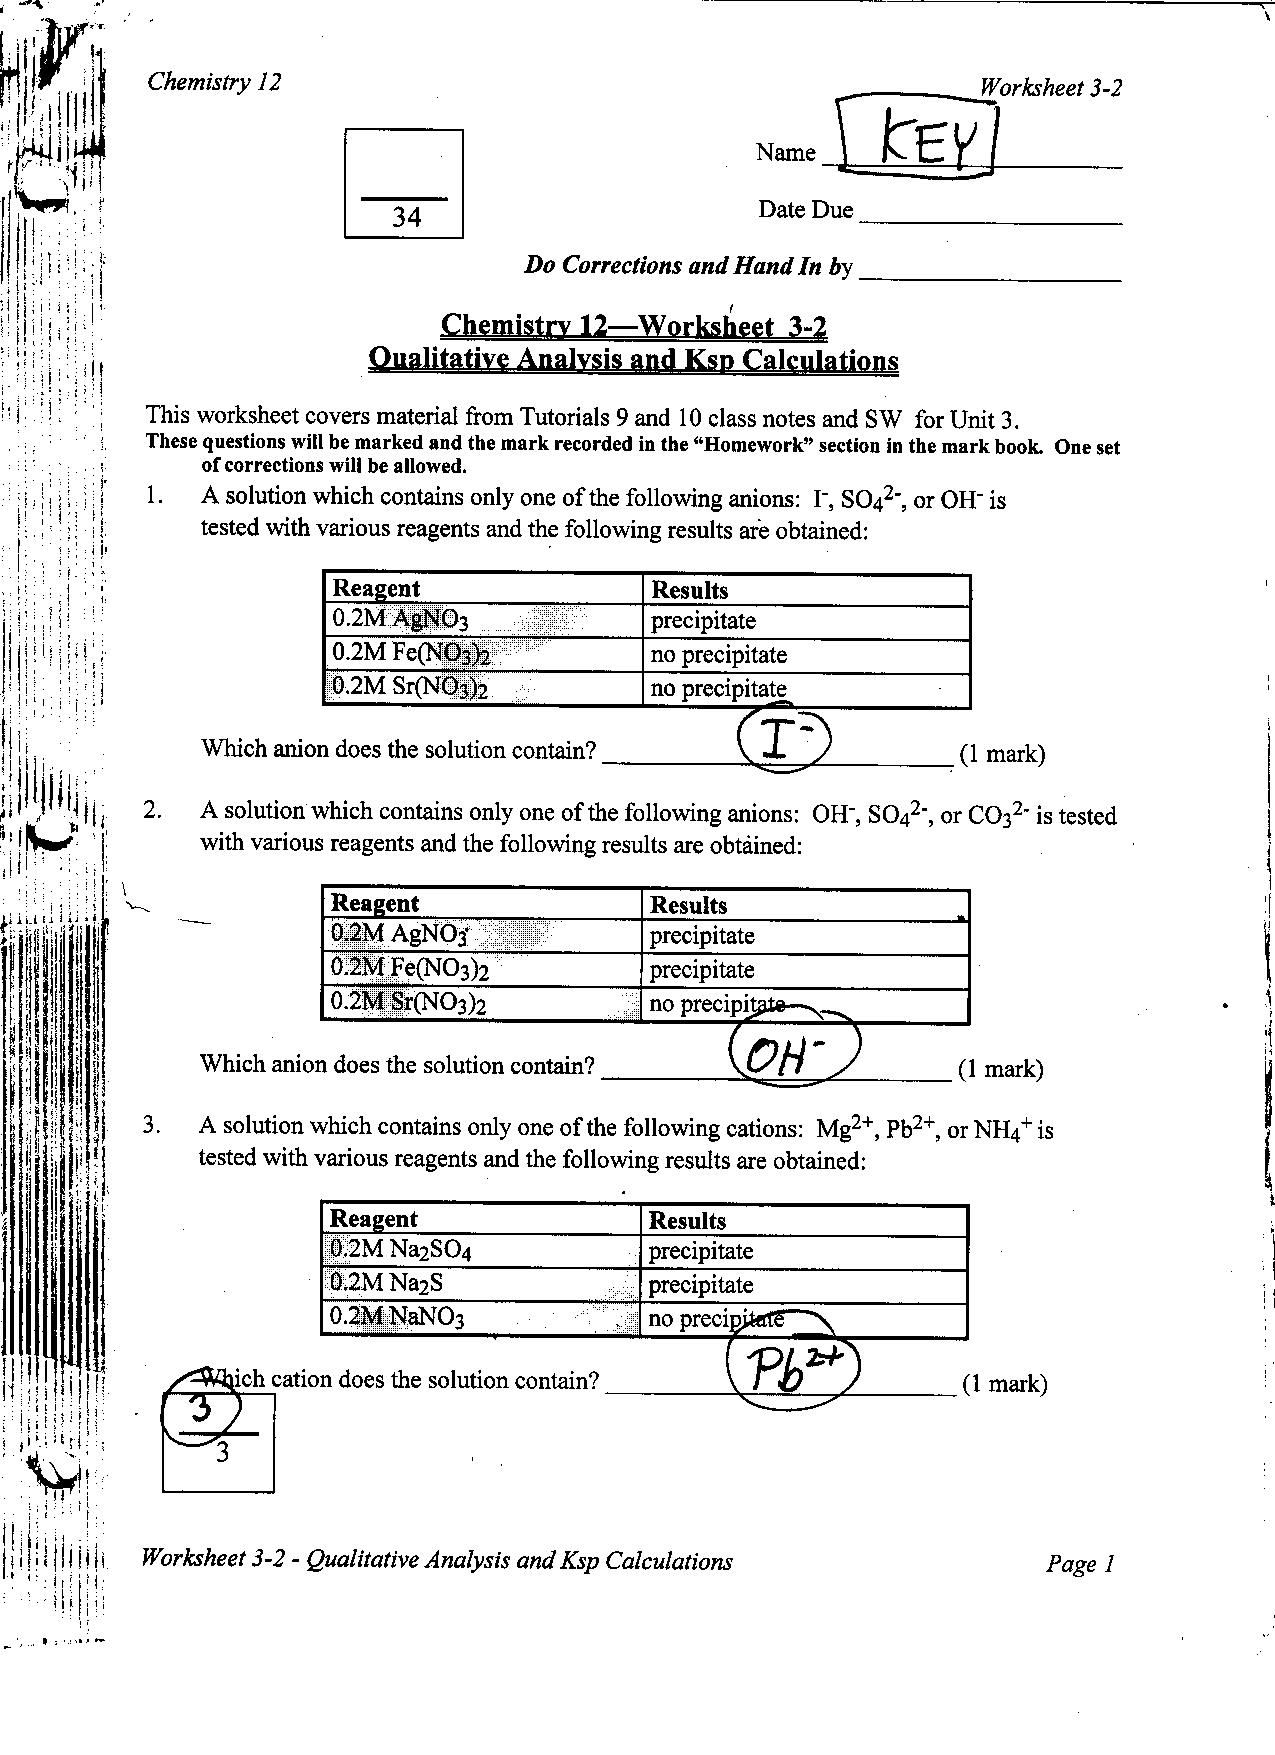 Acid Base Titration Calculations Worksheet